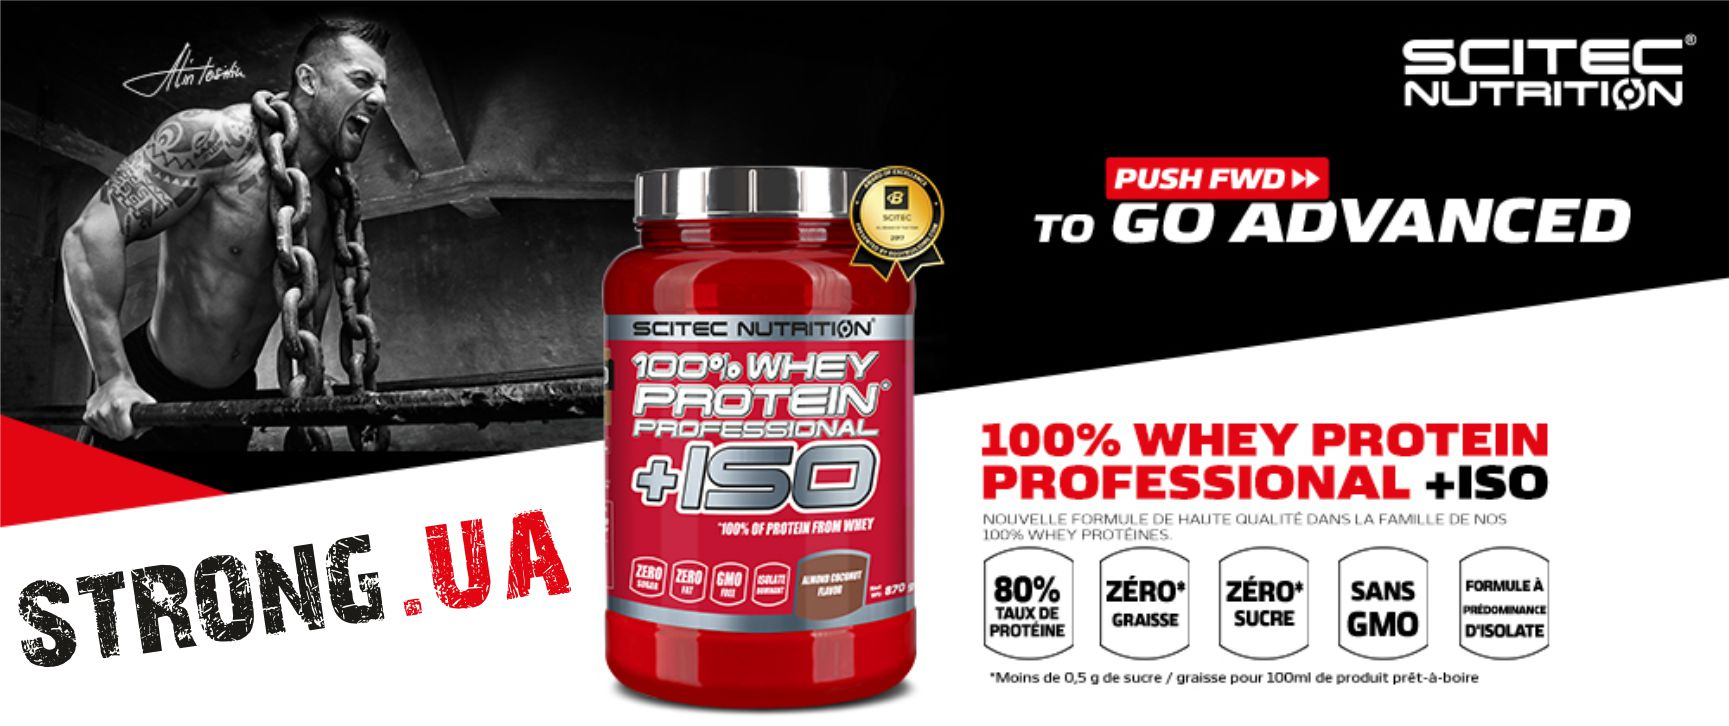 100% Whey Protein Professional +ISO